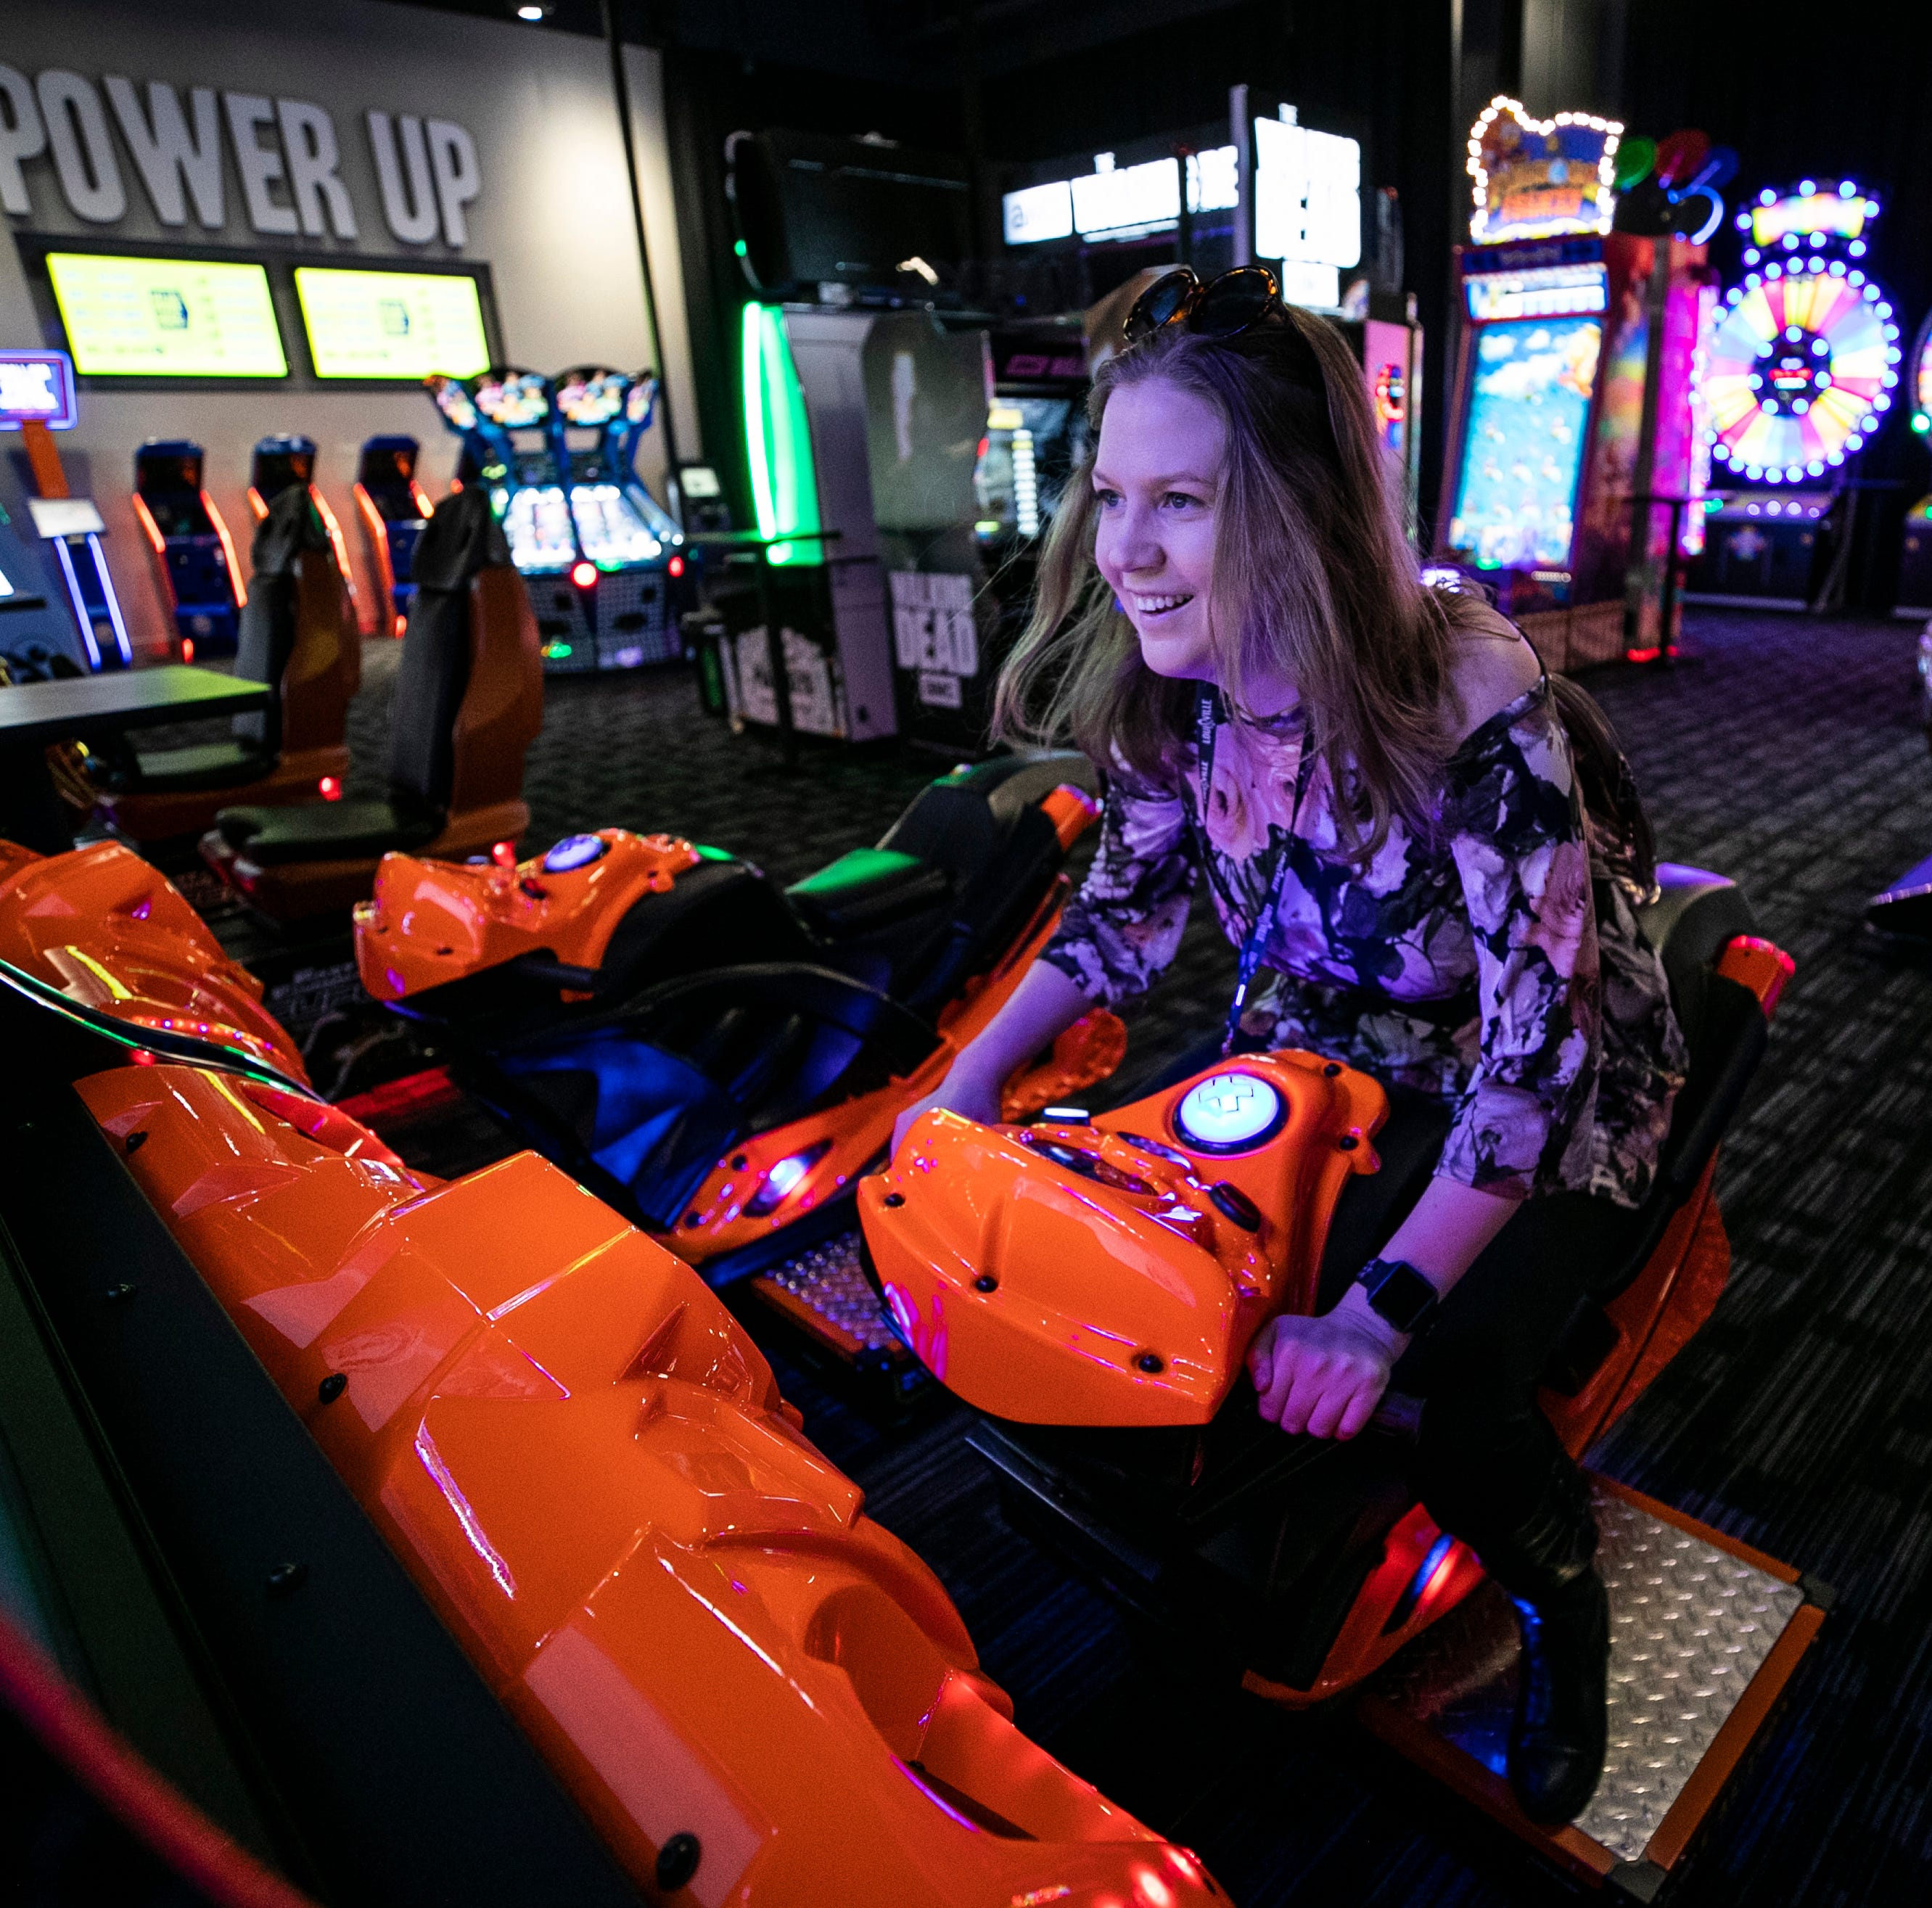 Merle Hay Mall to add Game Day restaurant, arcade entertainment center